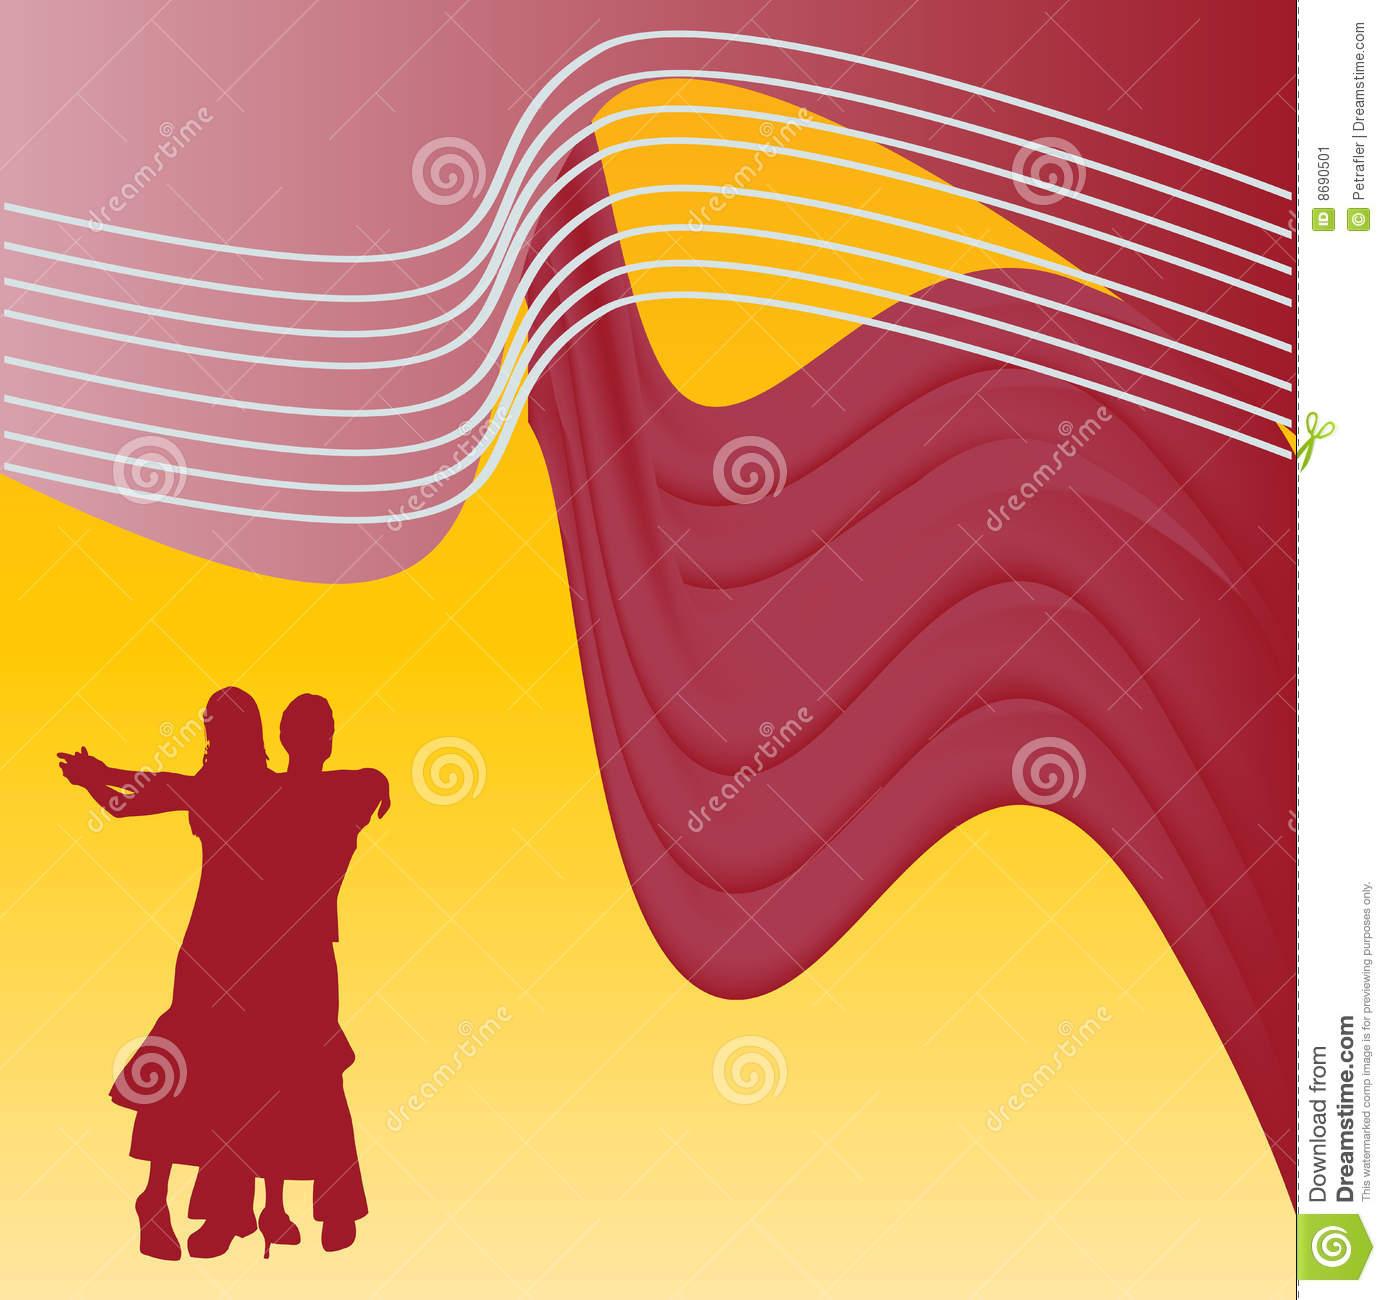 Ballroom Dancing Background Stock Vector - Illustration ...